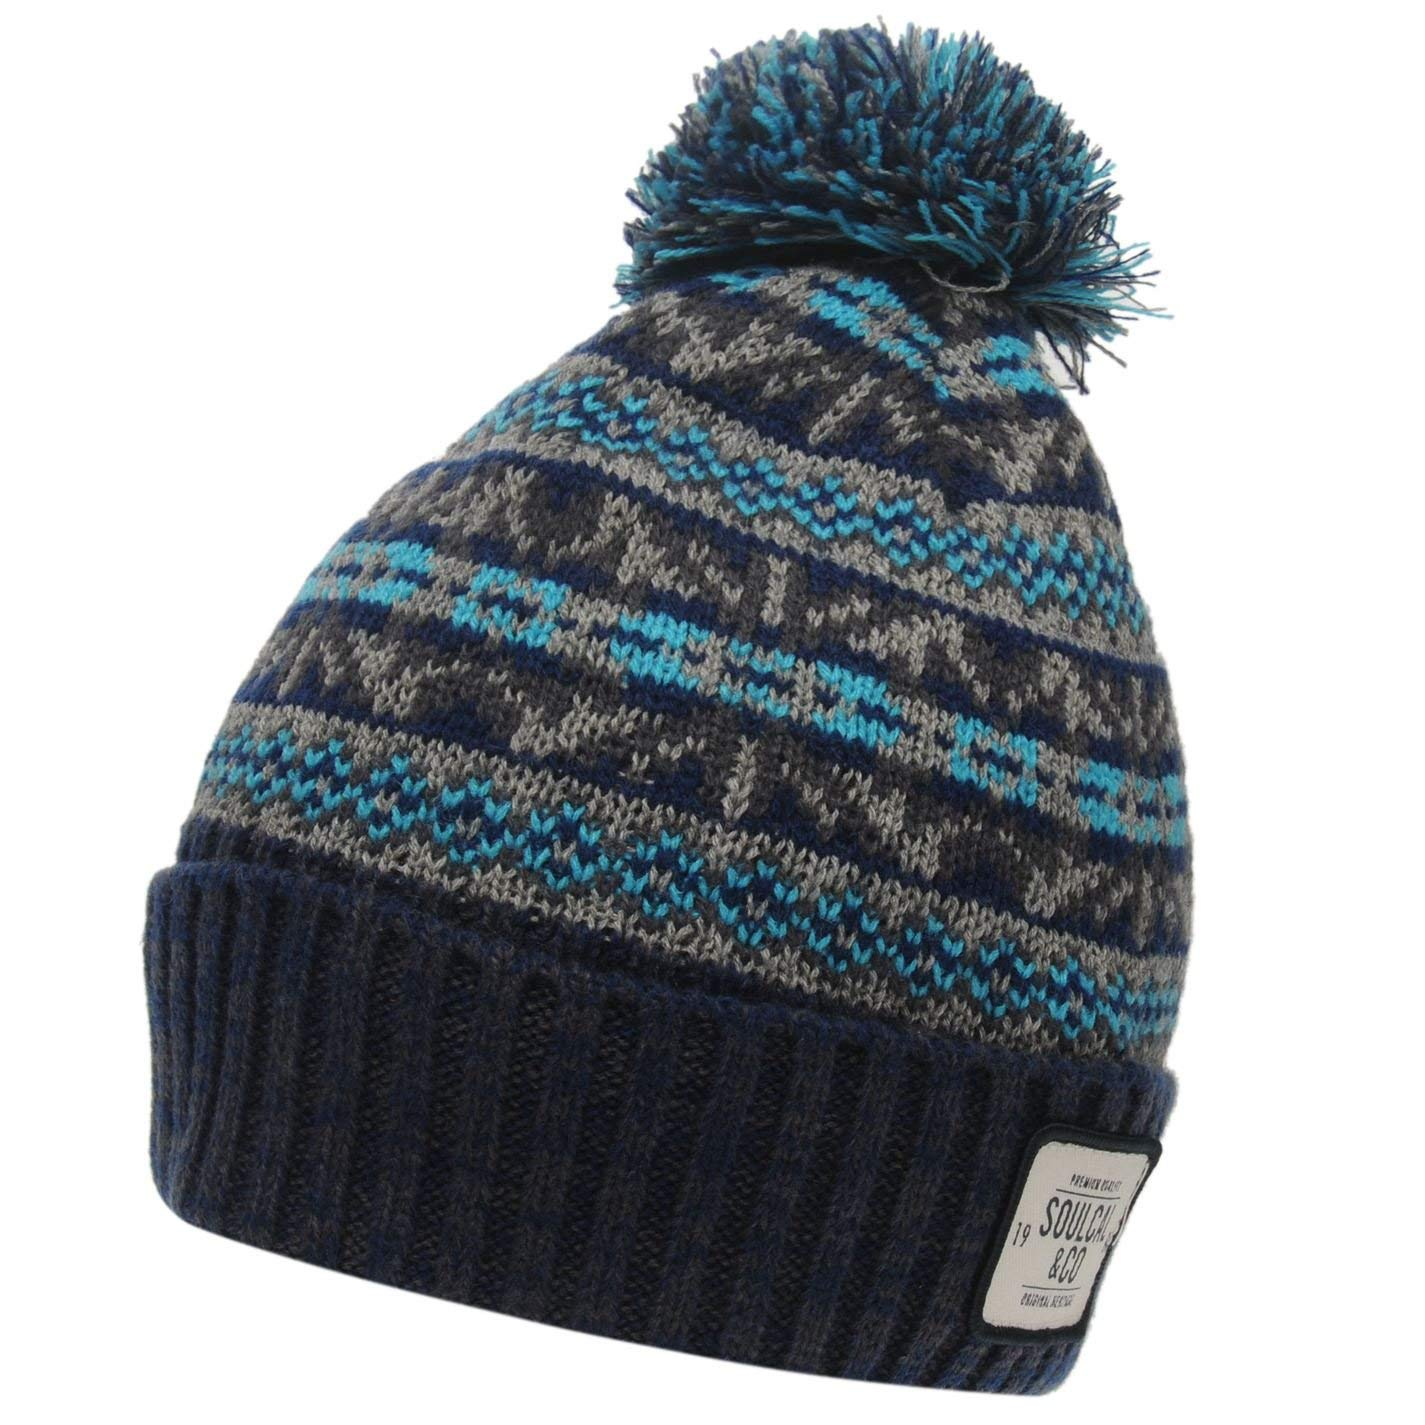 72ac1f78de4 Get Quotations · SoulCal Mens Dogoda Bobble Hat Pattern Winter